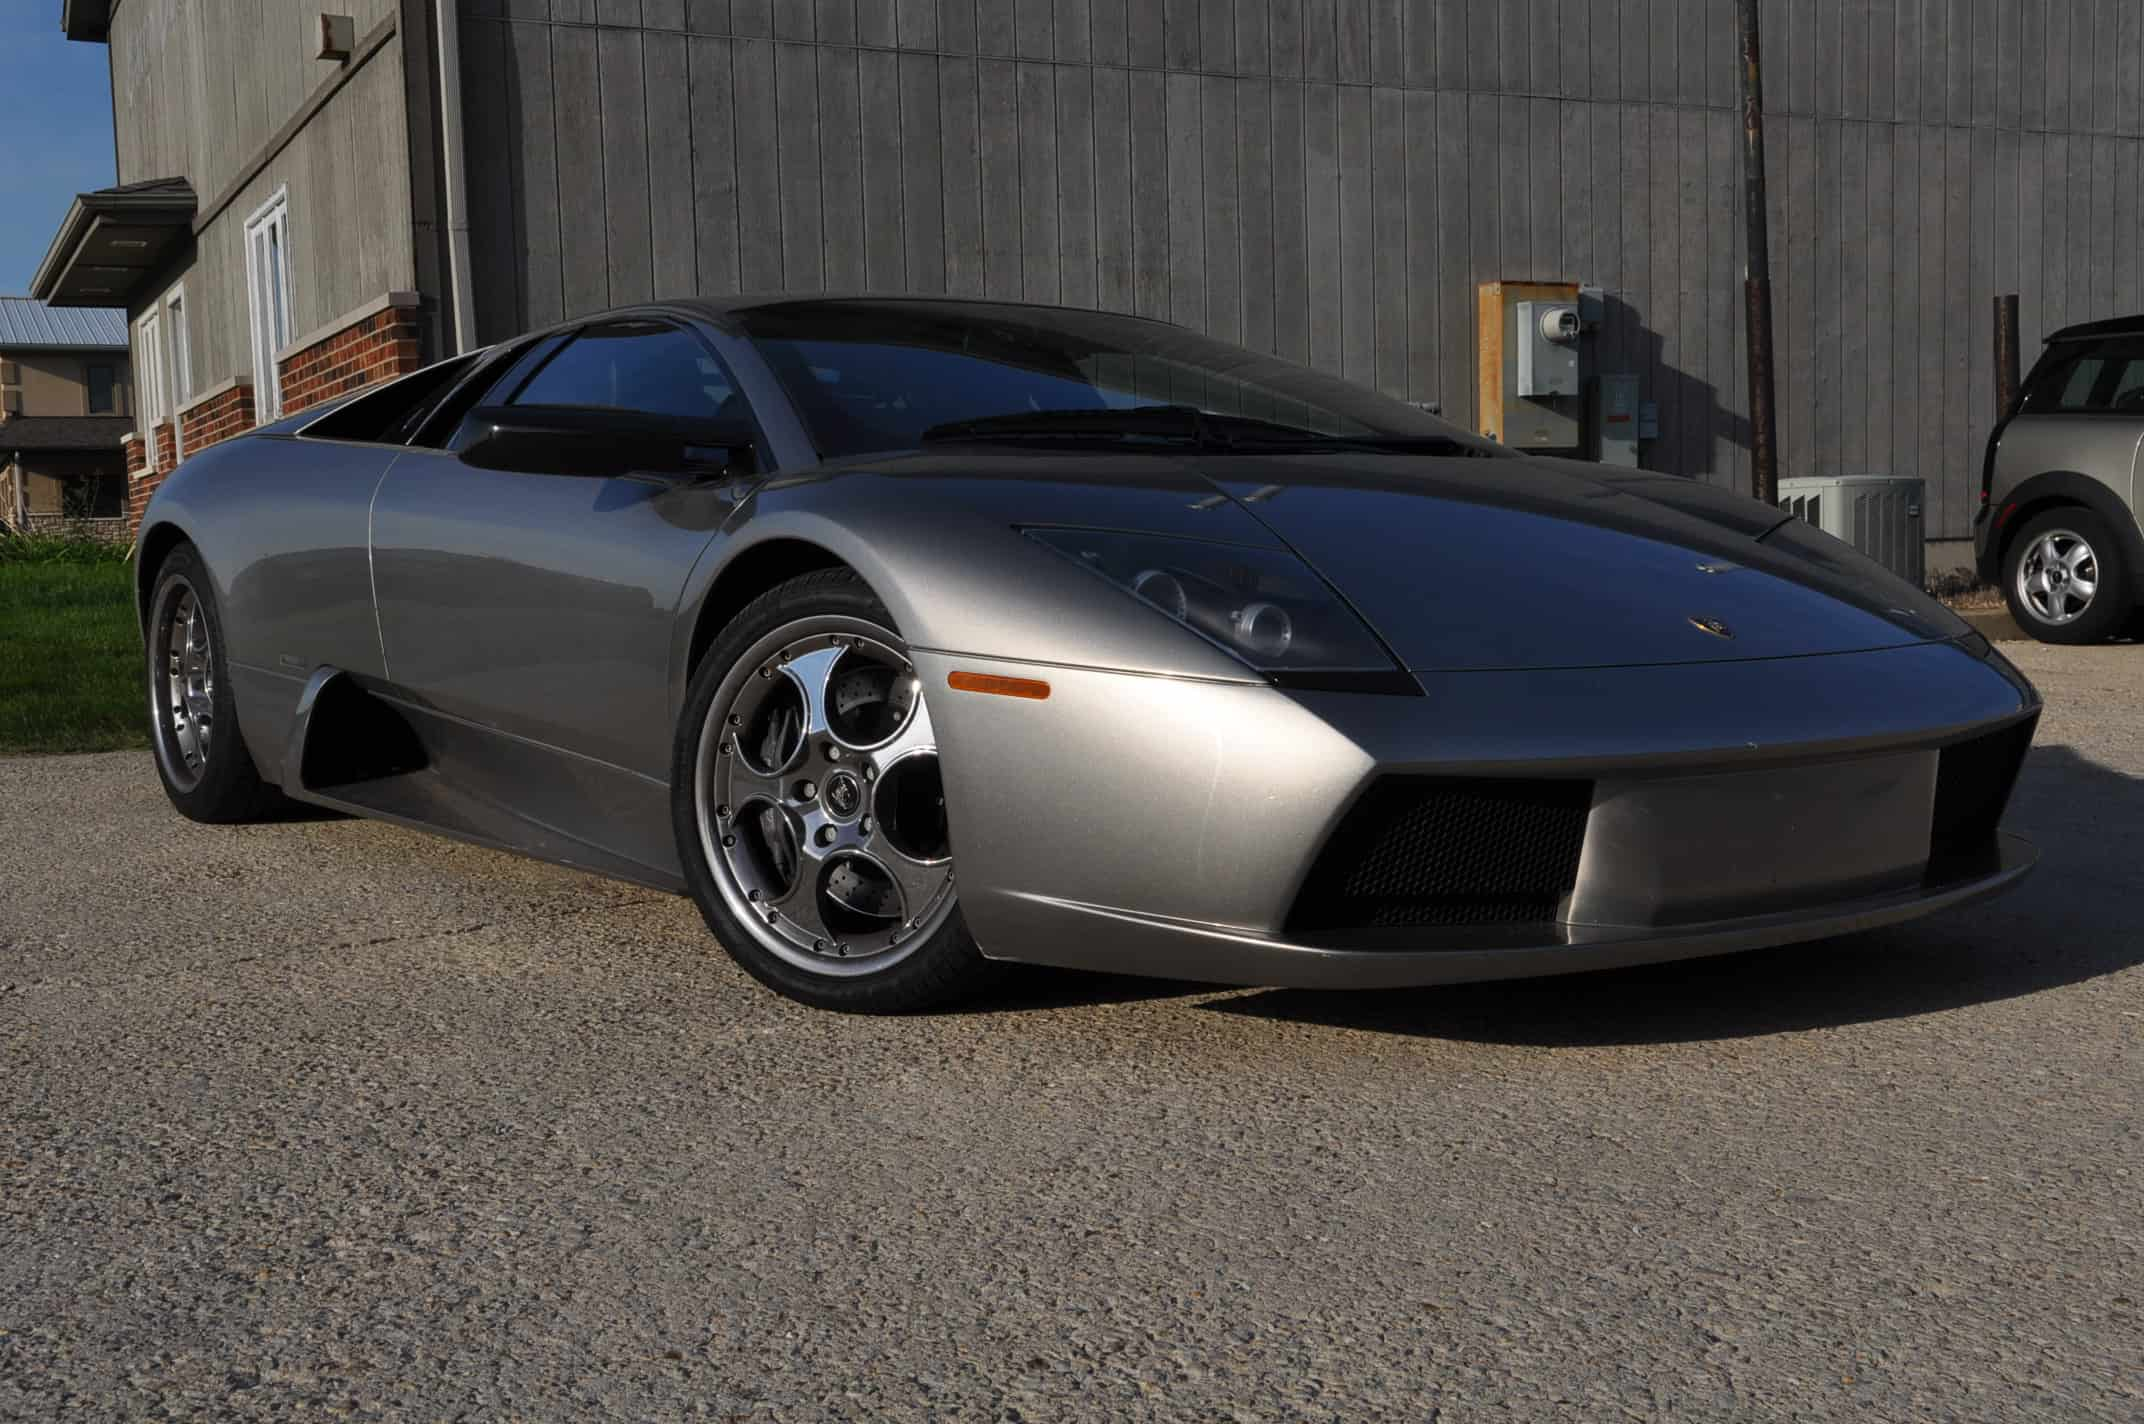 Lamborghini Murcielago Diagnostic Service Repair And Maintenance In